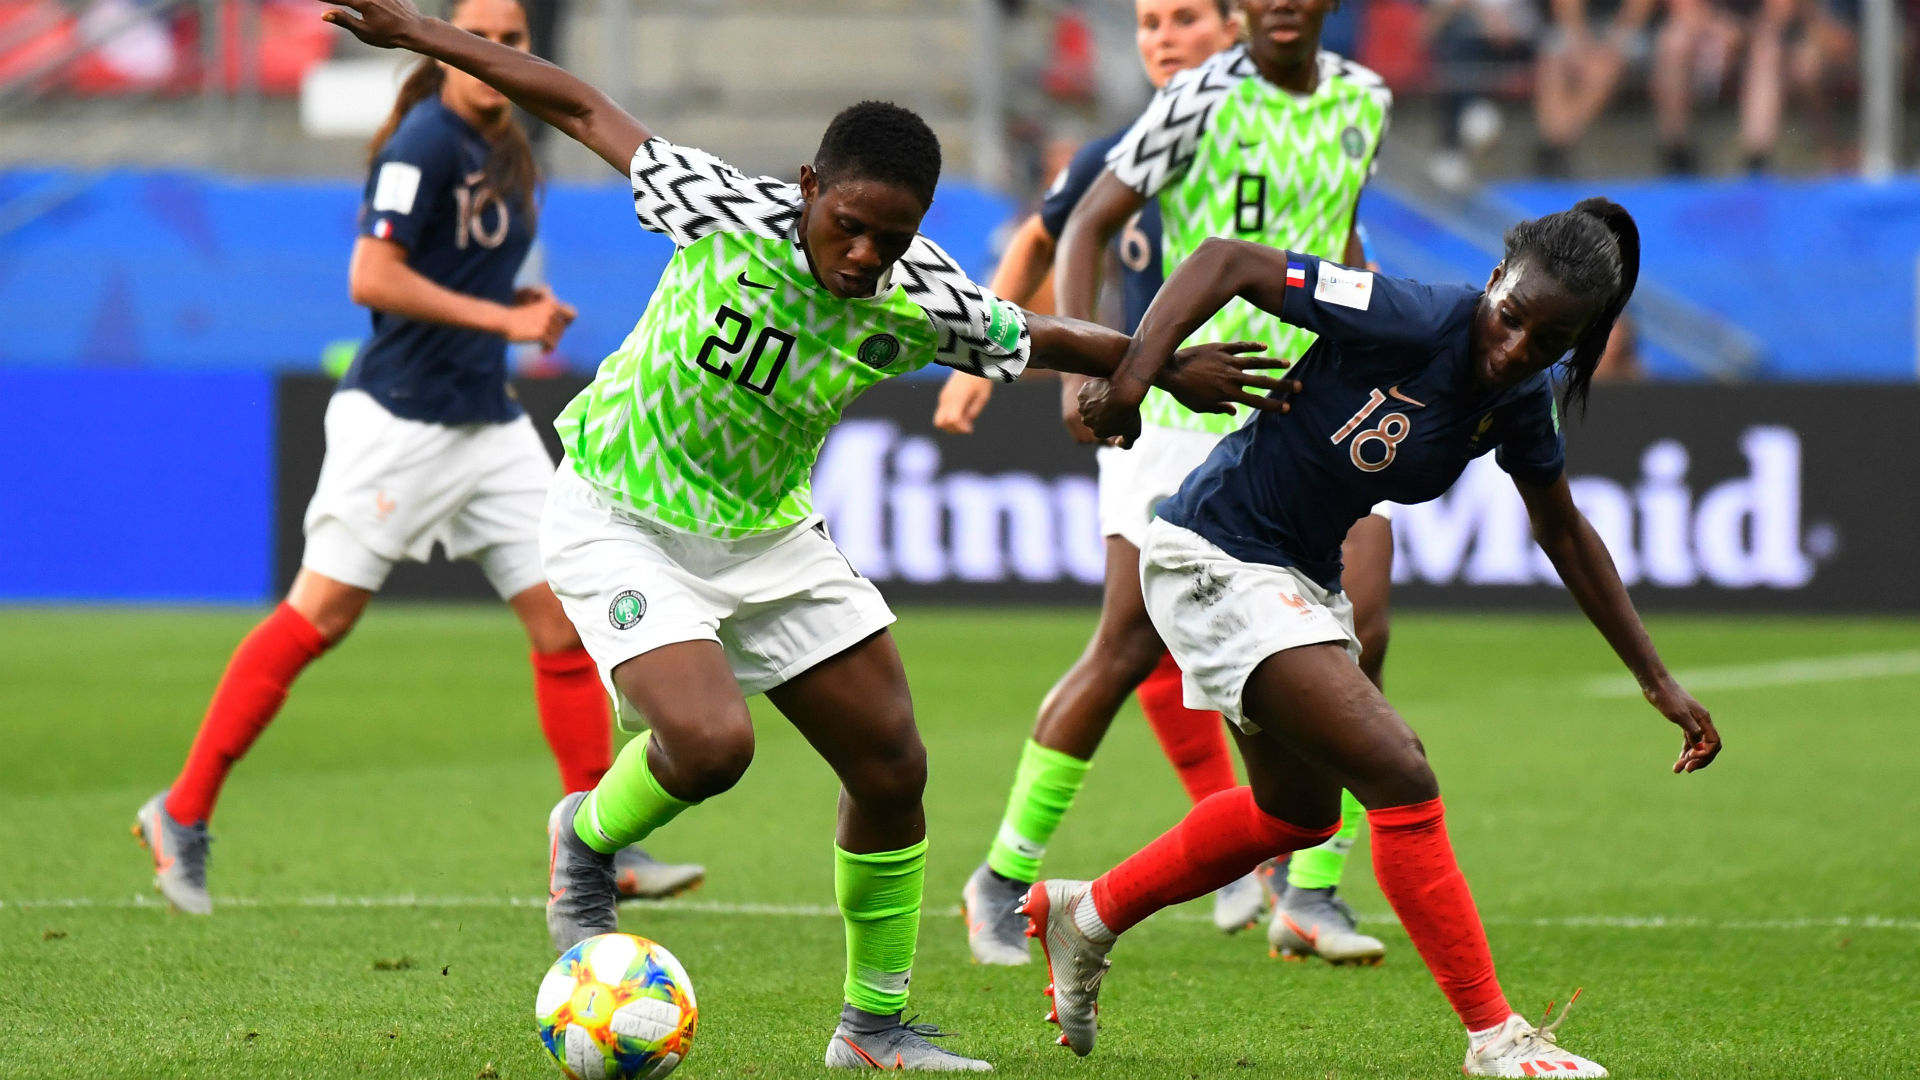 'This means a lot' - Nigeria's Okeke on winning debut with Madrid